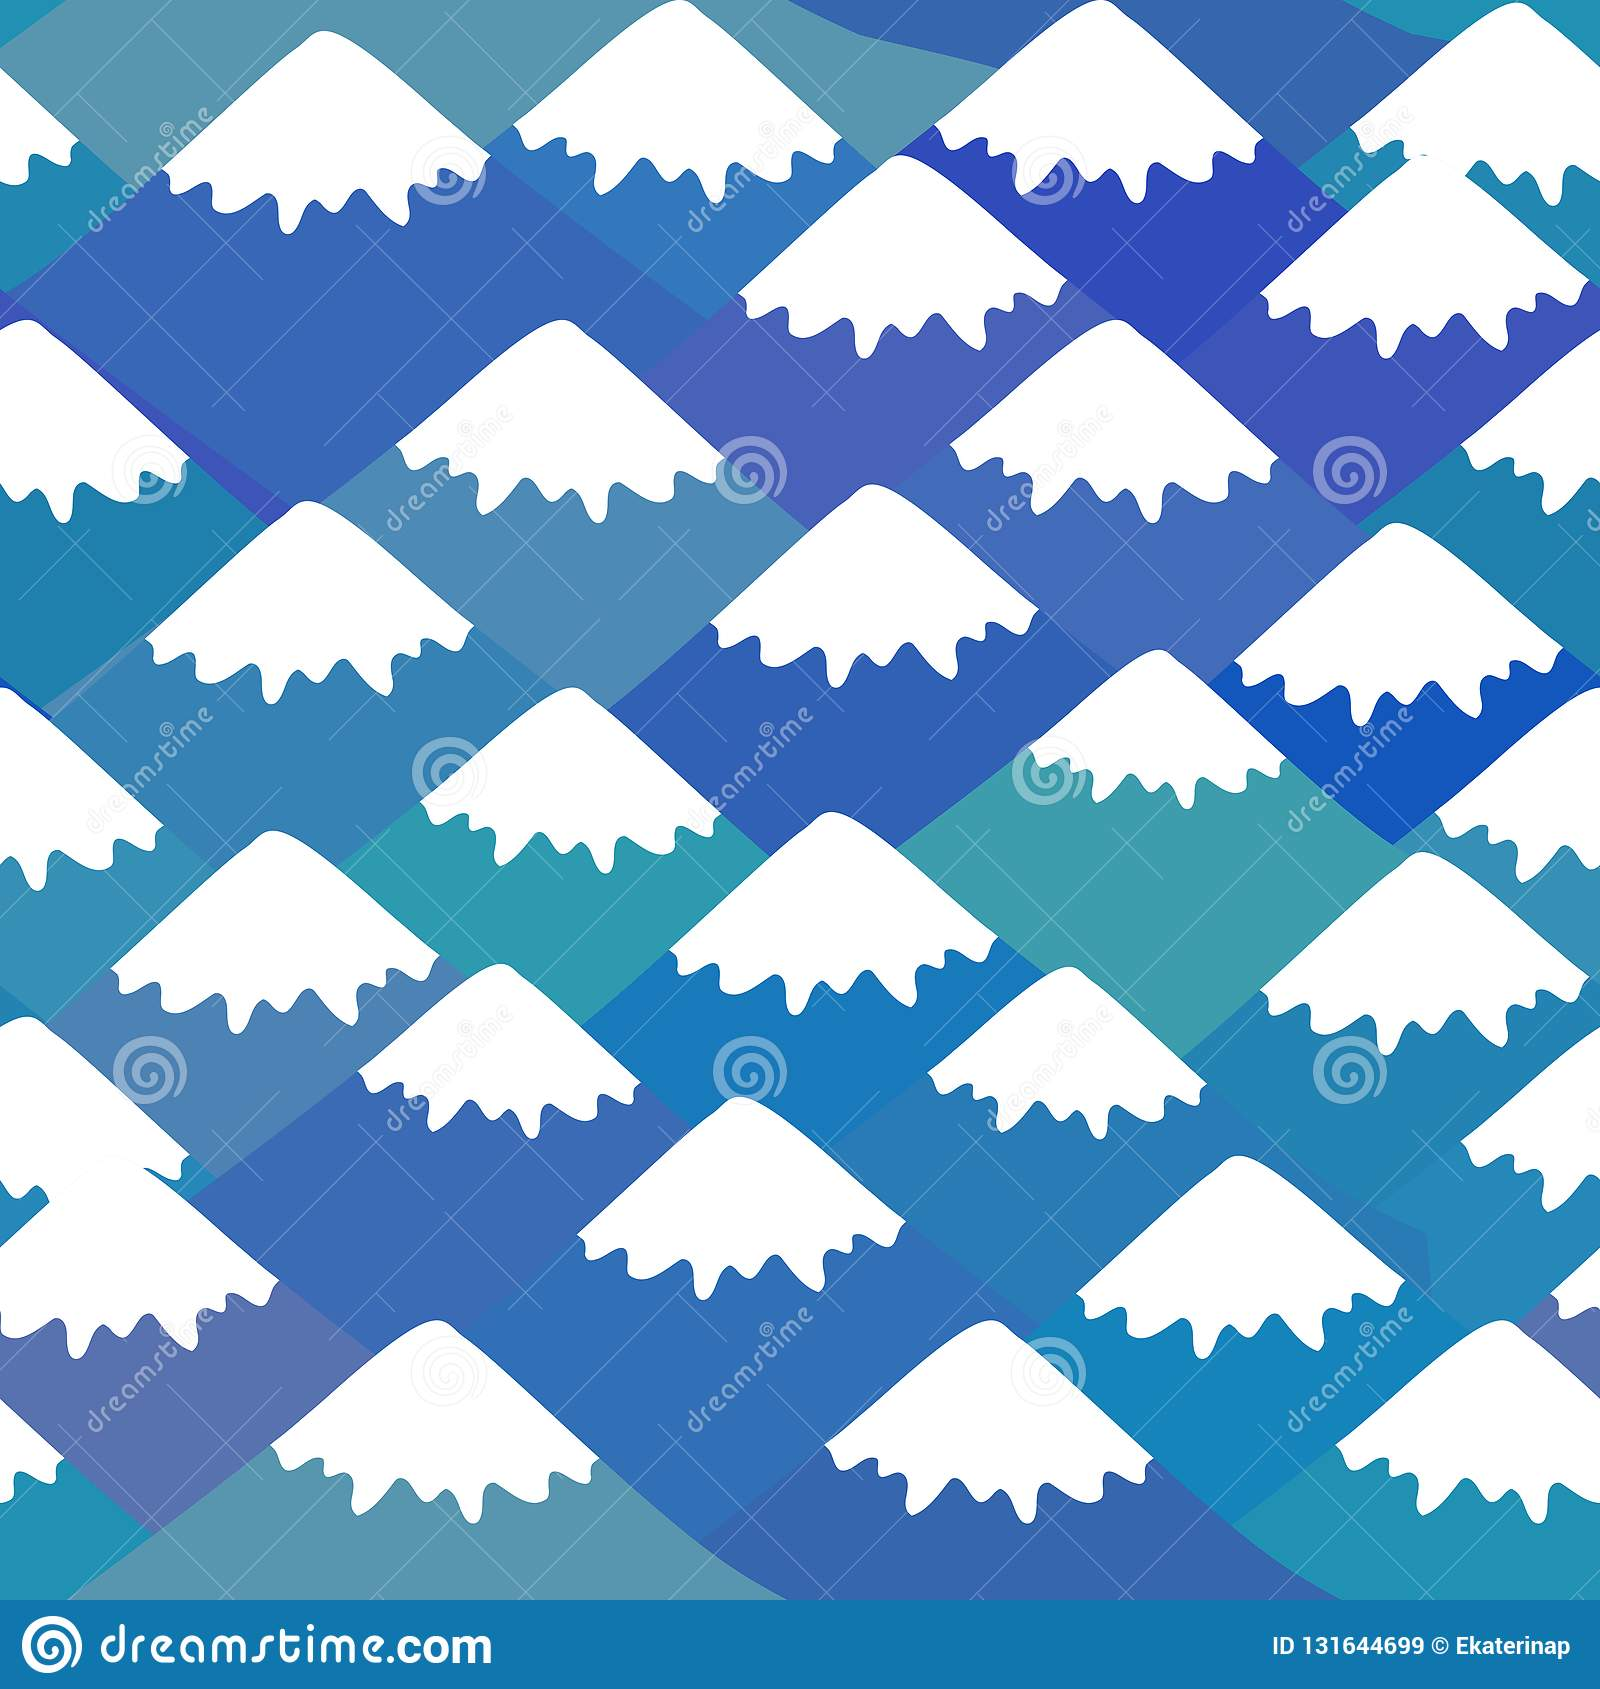 Seamless pattern Mount Fuji, Nature background with Japanese landscape. navy blue mountain with snow-capped peaks. Vector